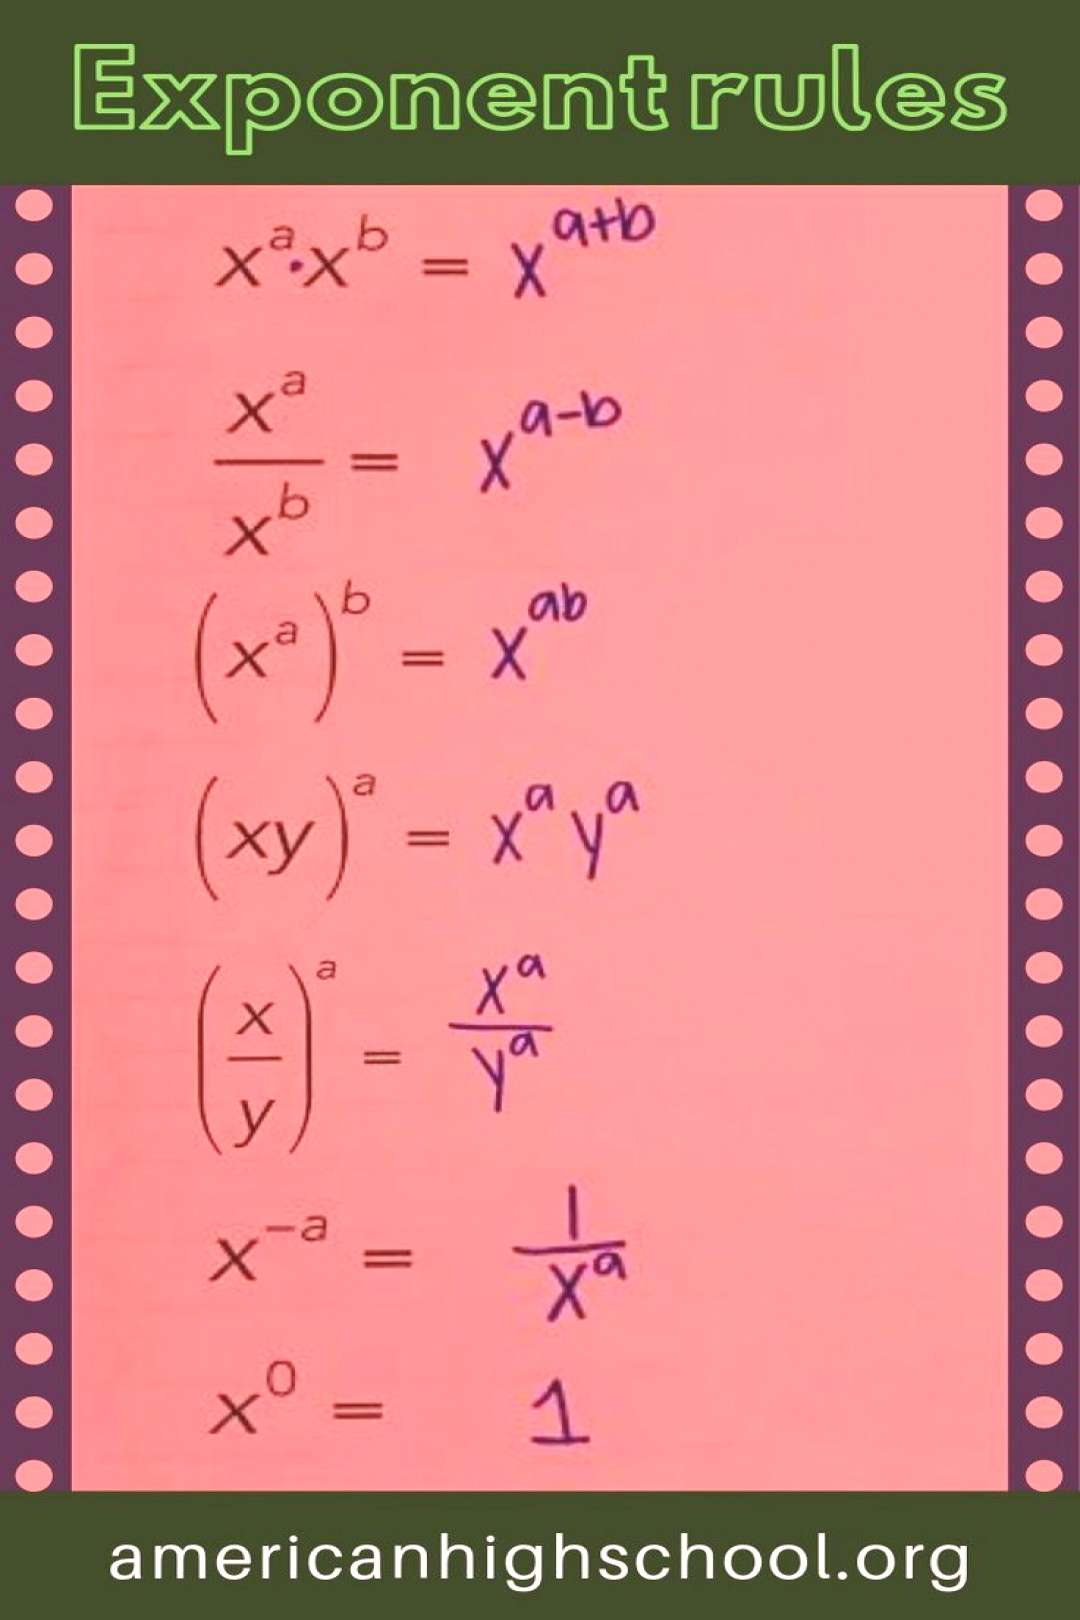 45+ Basic math tricks college list Exponent Rules. What are the main exponent rules?